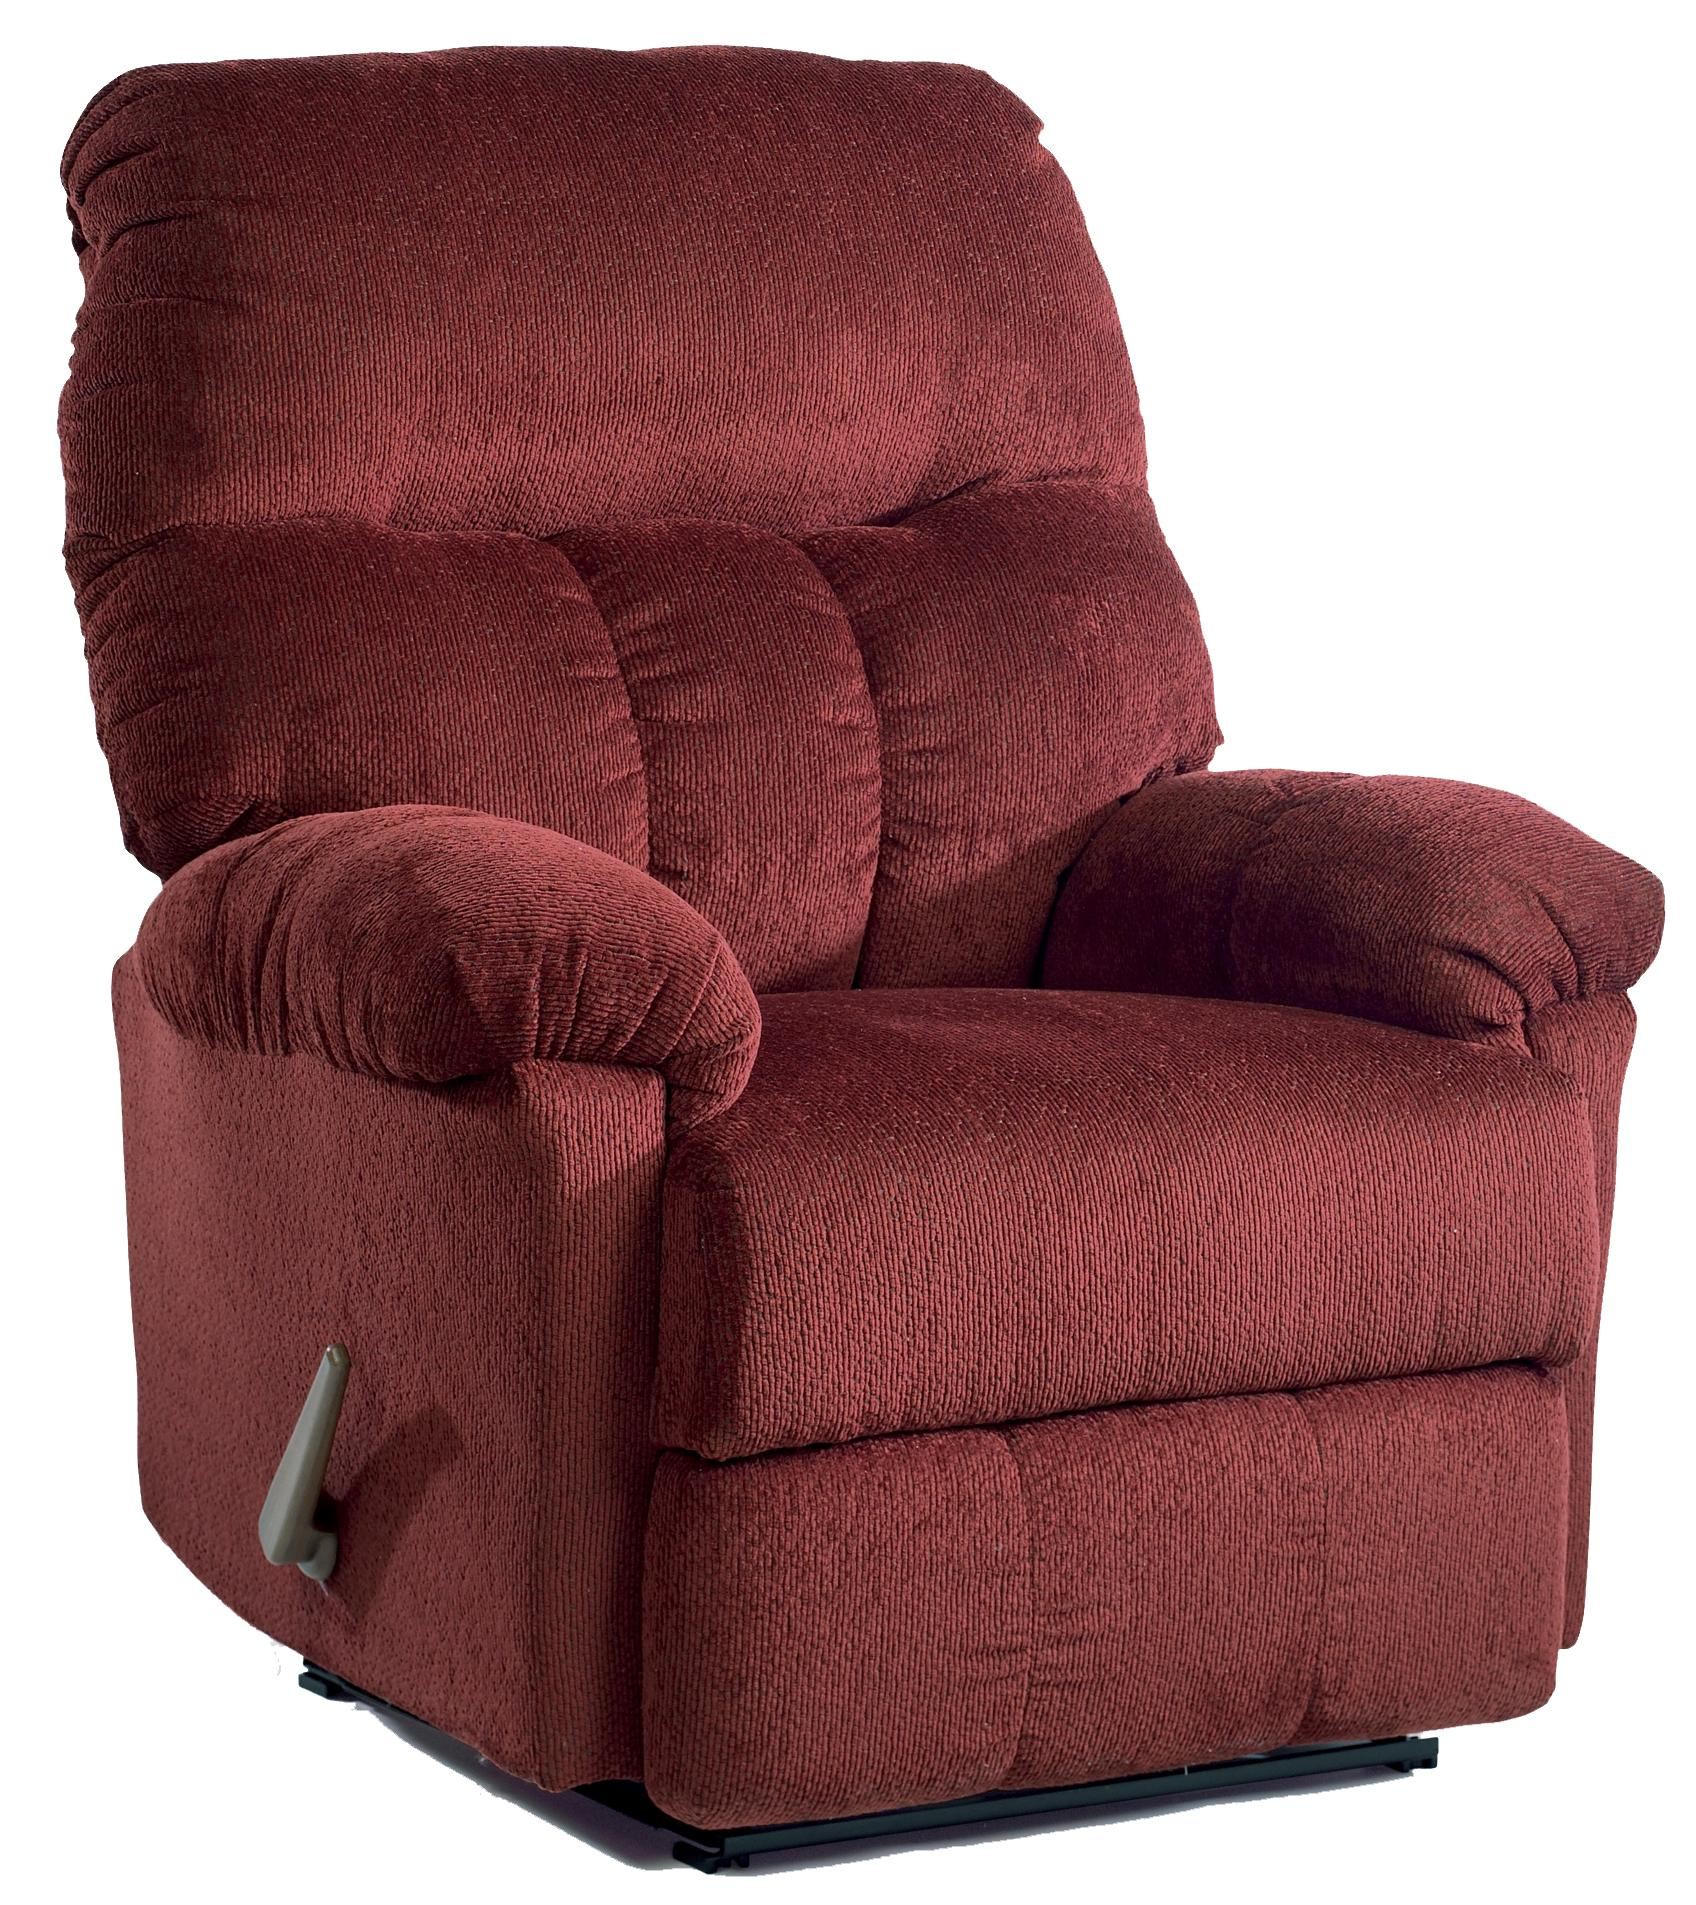 Best Home Furnishings Ares Ares Power Wall Hugger Recliner - Item Number: 2MP34